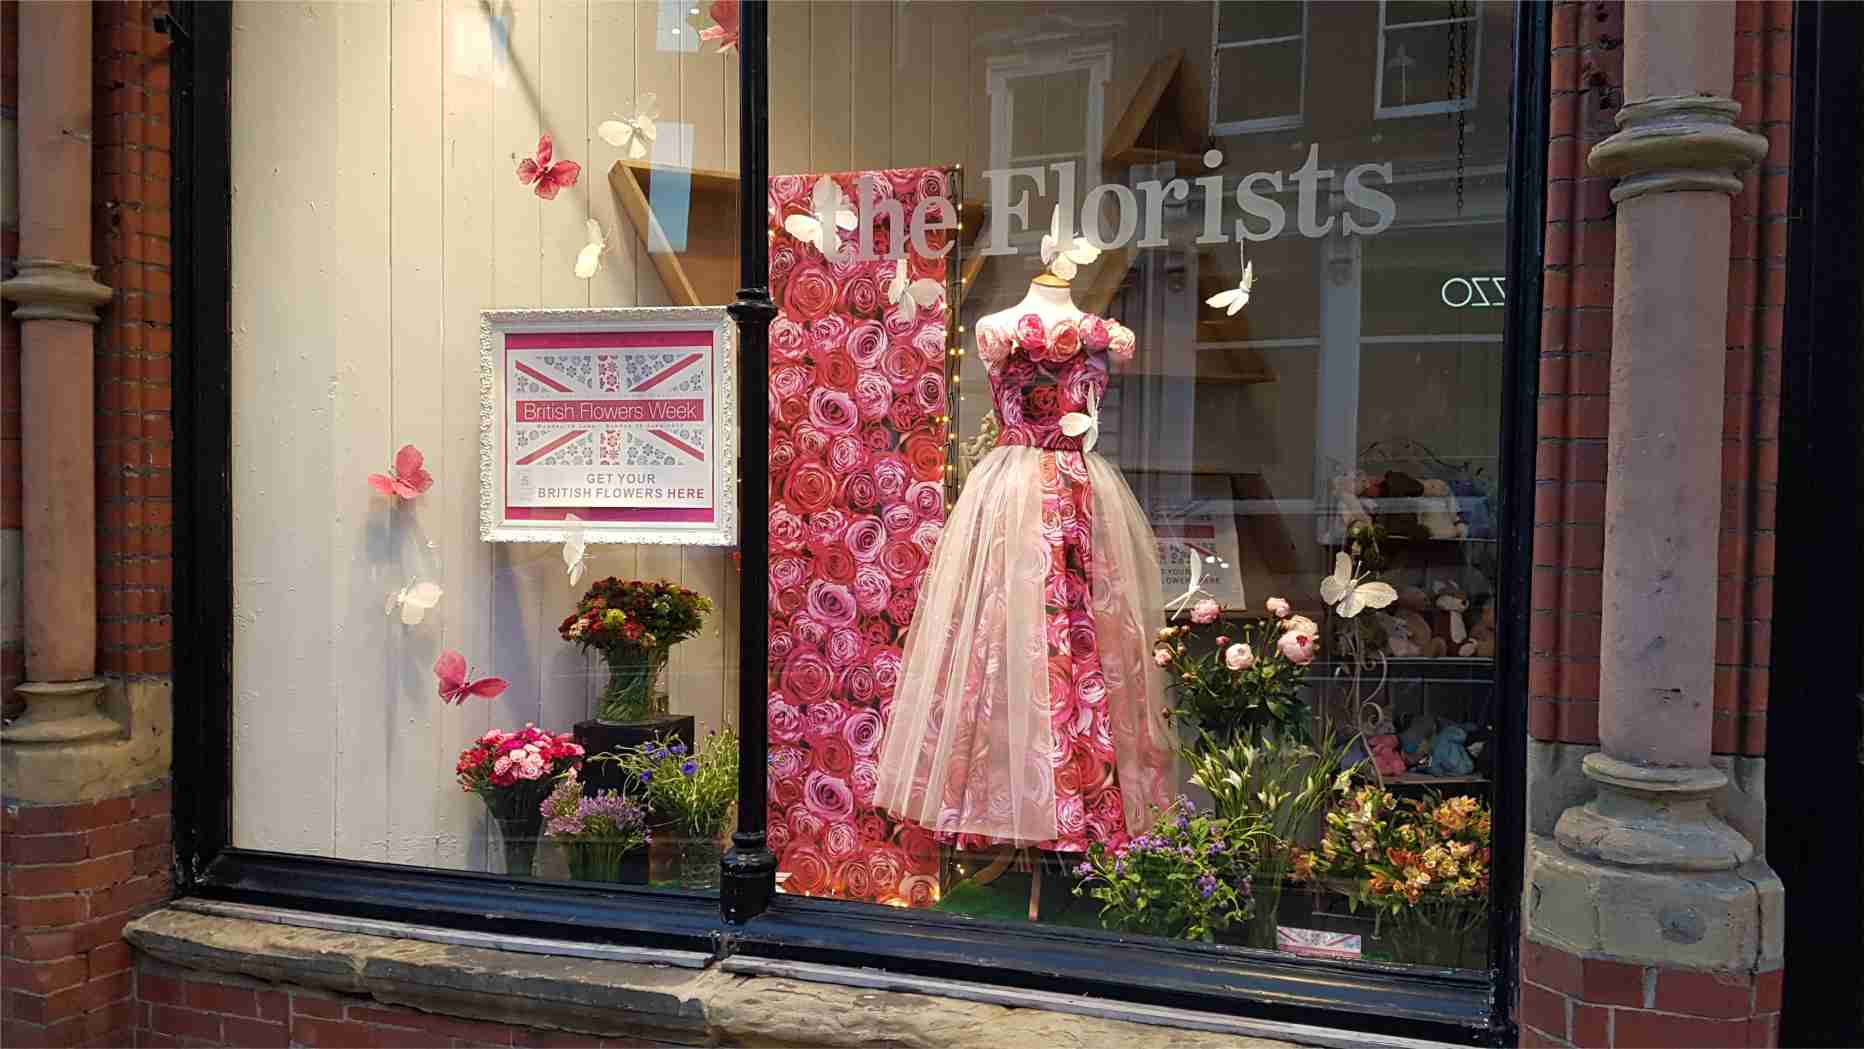 BritishFlowerWeek/WardsWindowFull.jpg